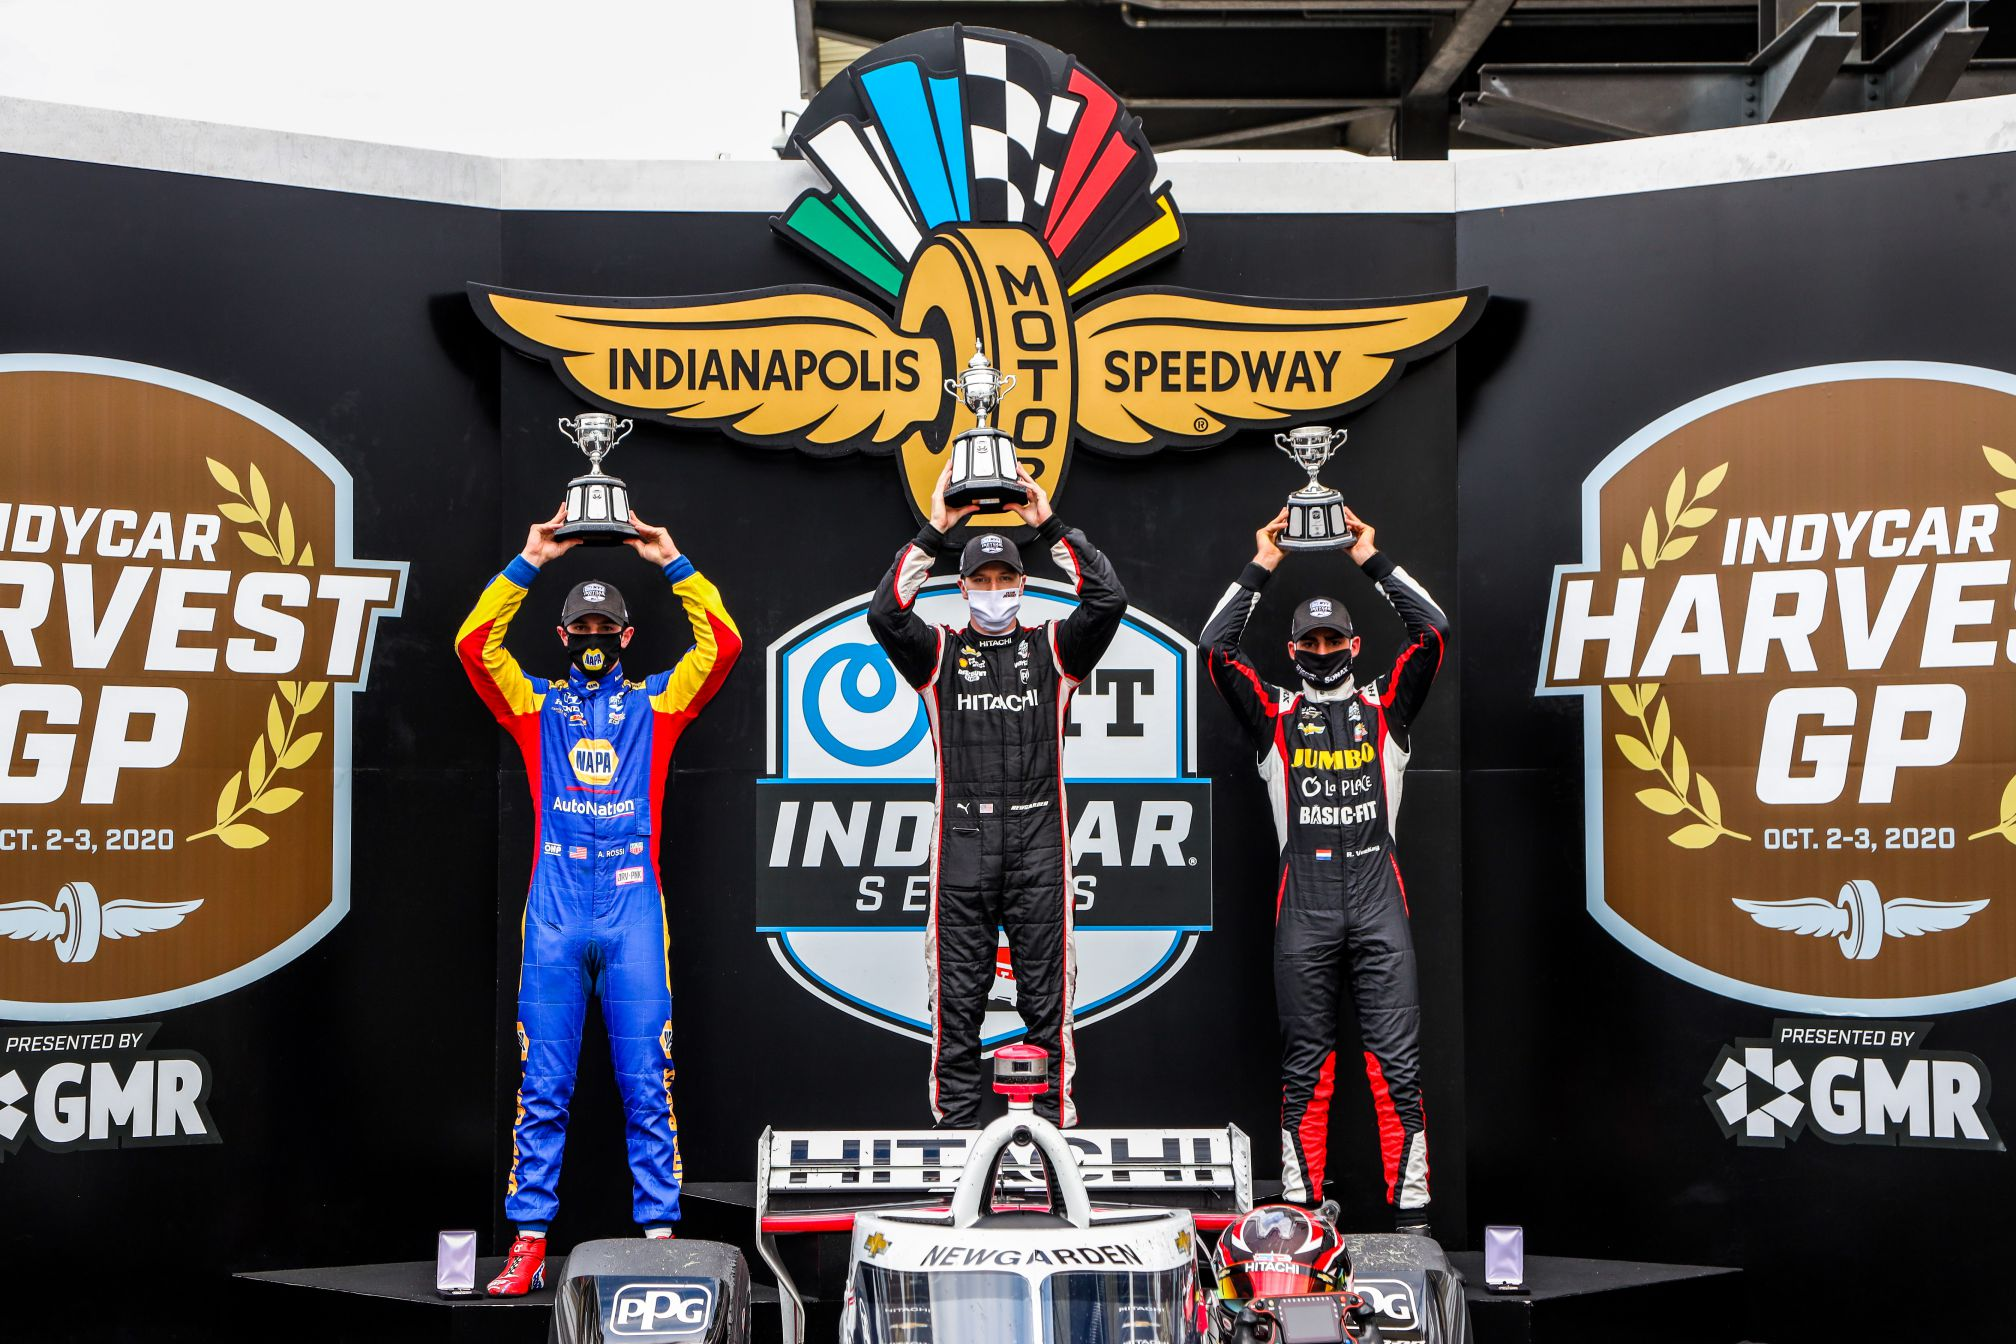 INDYCAR Harvest GP Race 1 podium: Alexander Rossi (2nd), Josef Newgarden (winner) and Rinus VeeKay (3rd). © [Andy Clary/ Spacesuit Media]